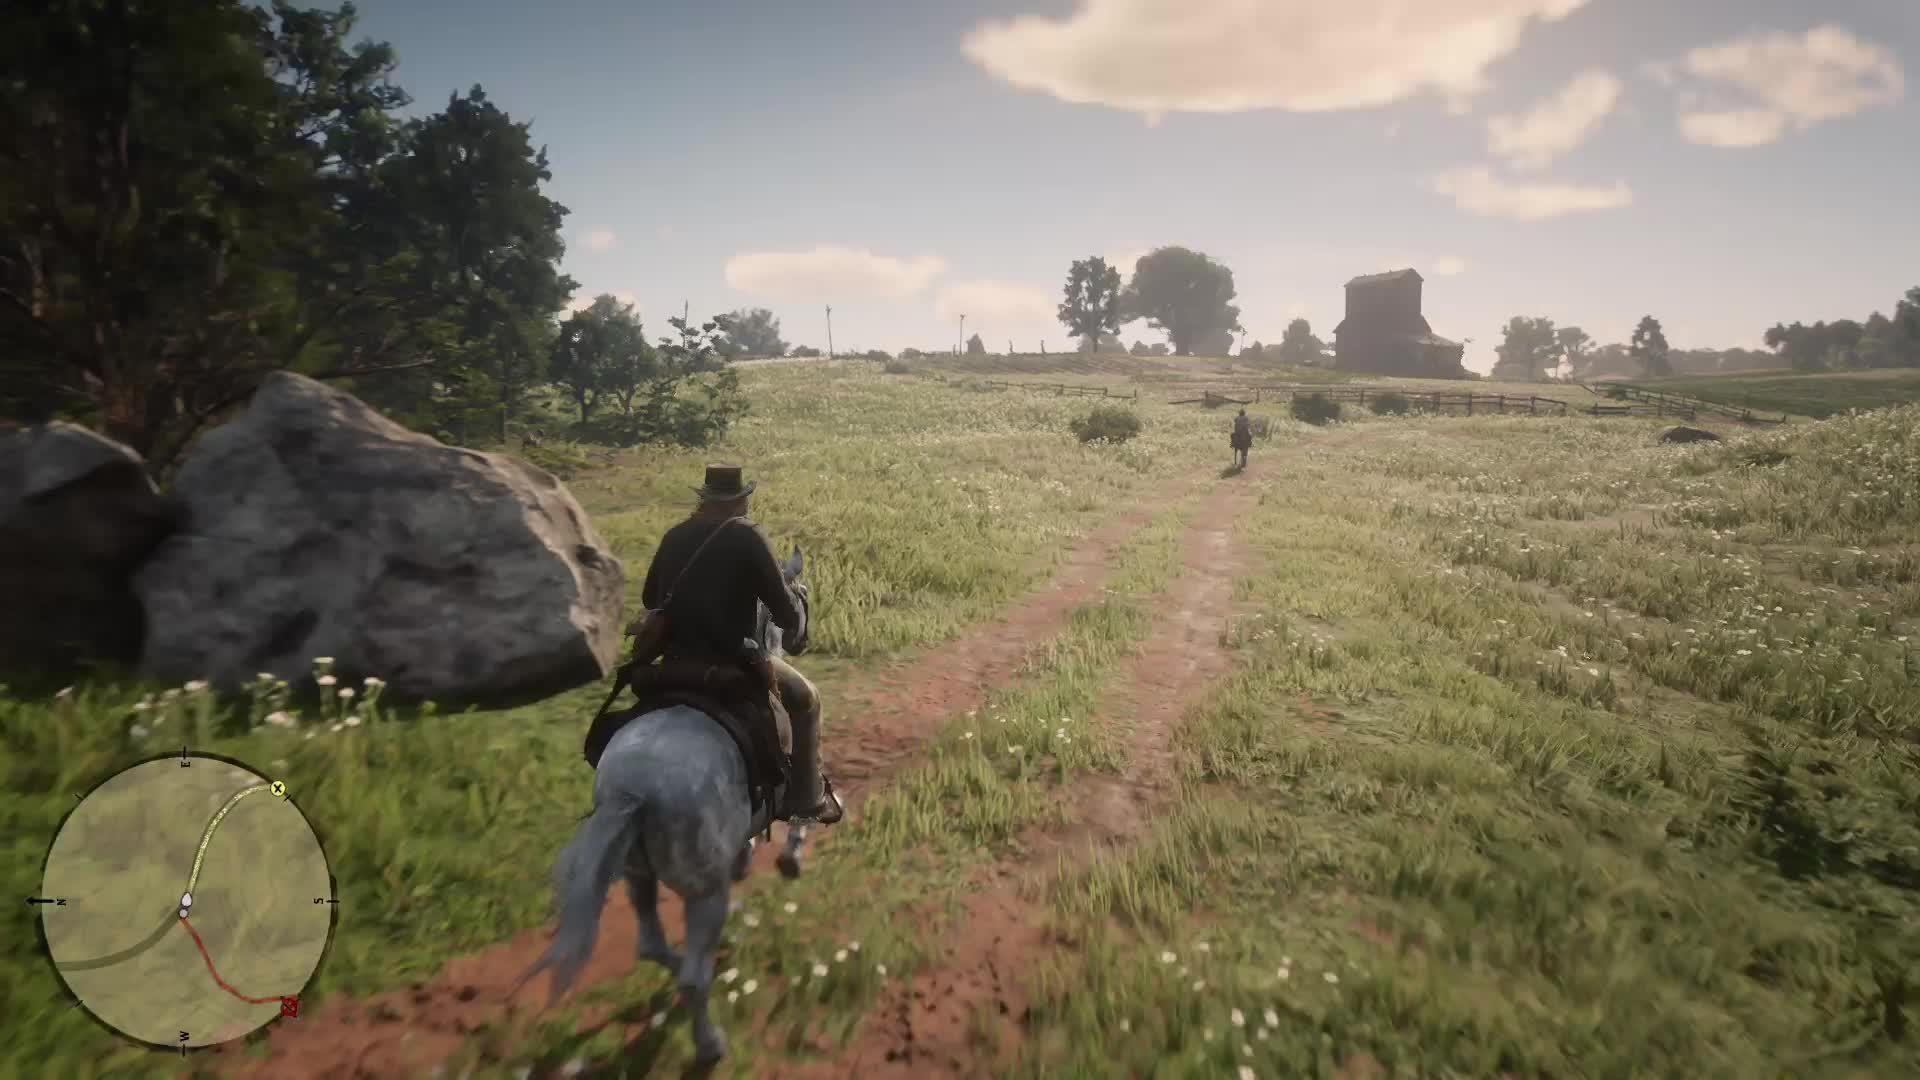 ps4, red dead redemption, Red Dead Redemption 2 - Unlucky cowboy GIFs